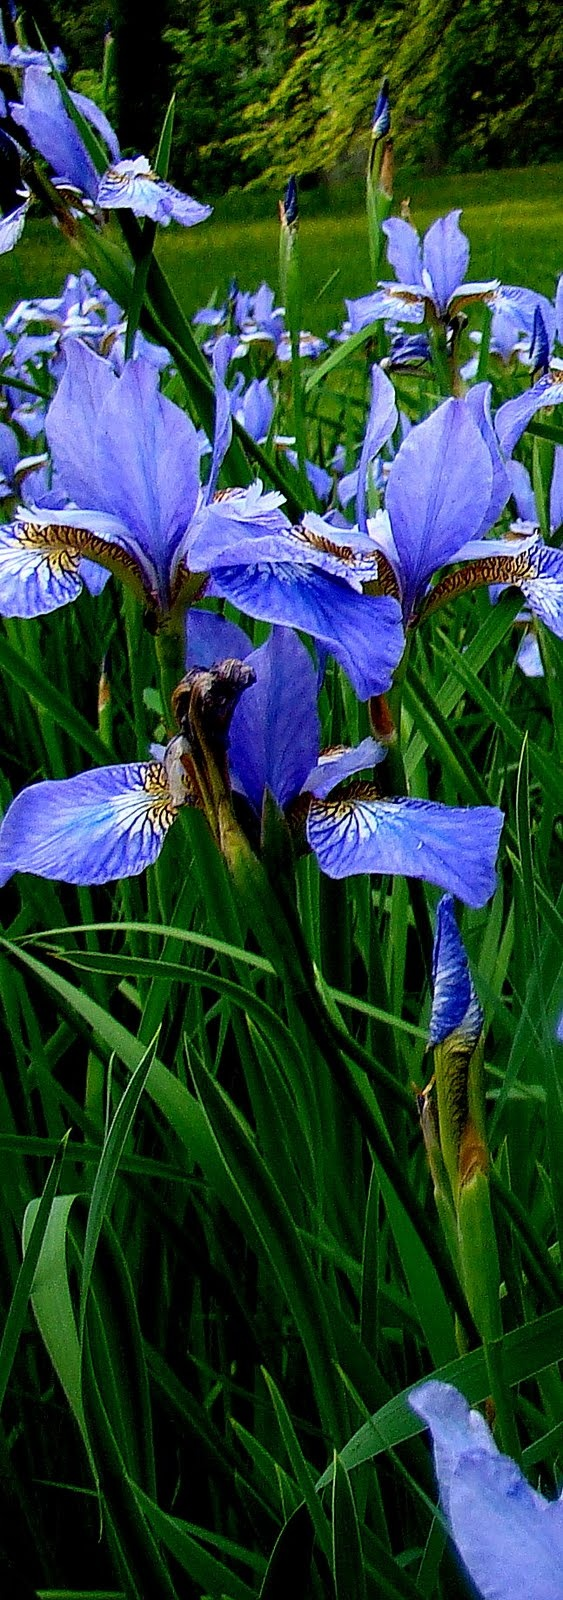 Iris blue....creating a garden with a soul...this is the Siberian iris I was telling you about.  They ate very ray to grow and pretty disease resistant.   Cut worms stay away from these.